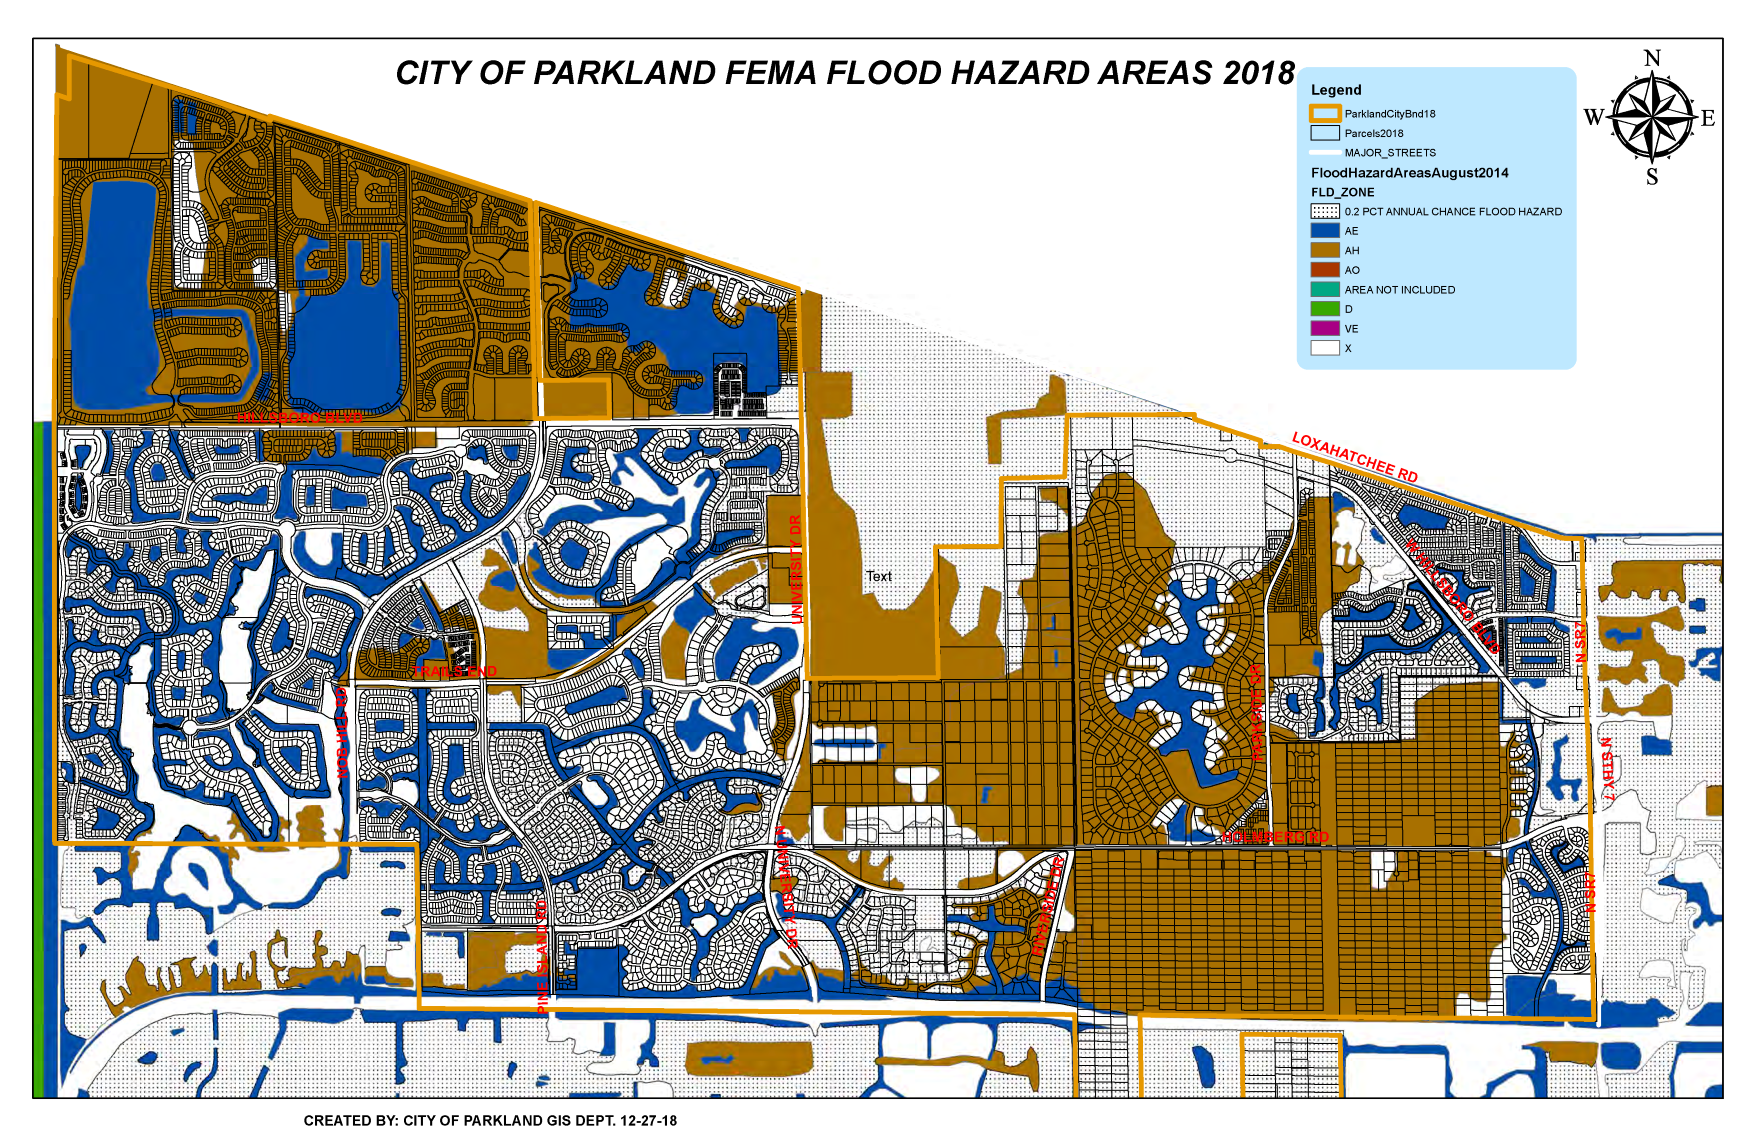 FEMA Flood Hazard Areas